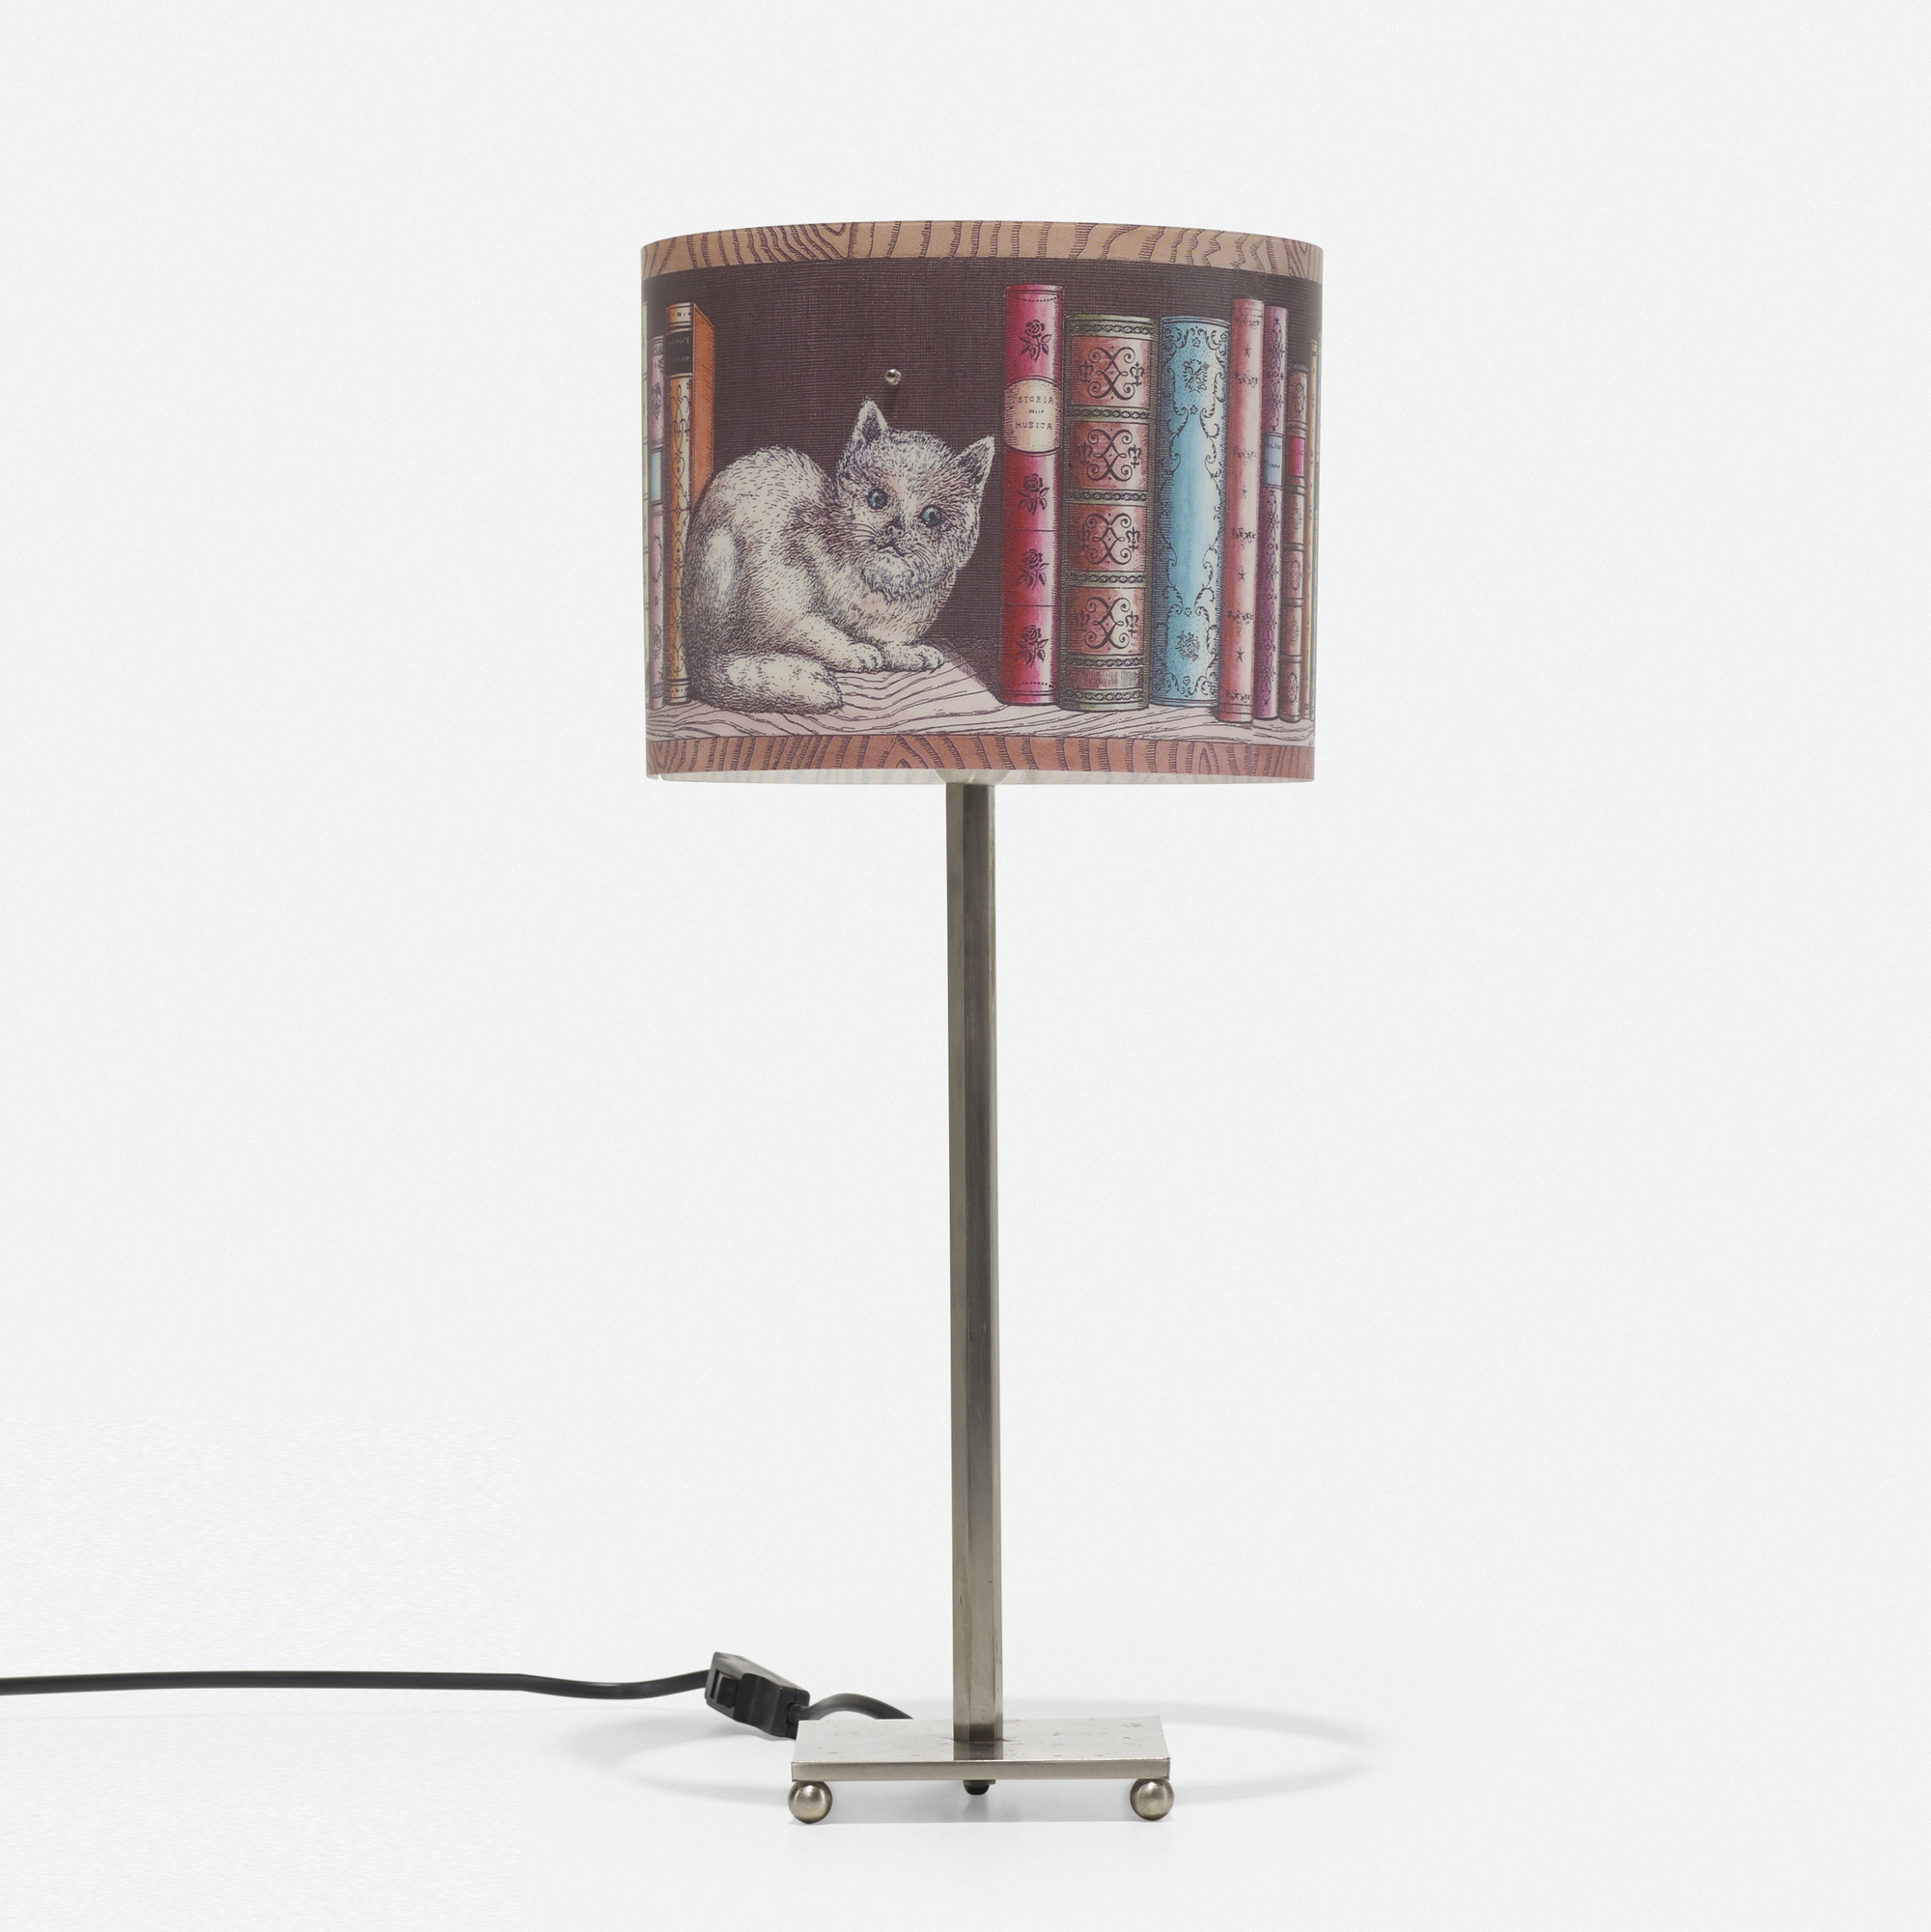 450: Barnaba Fornasetti / table lamp (2 of 3)